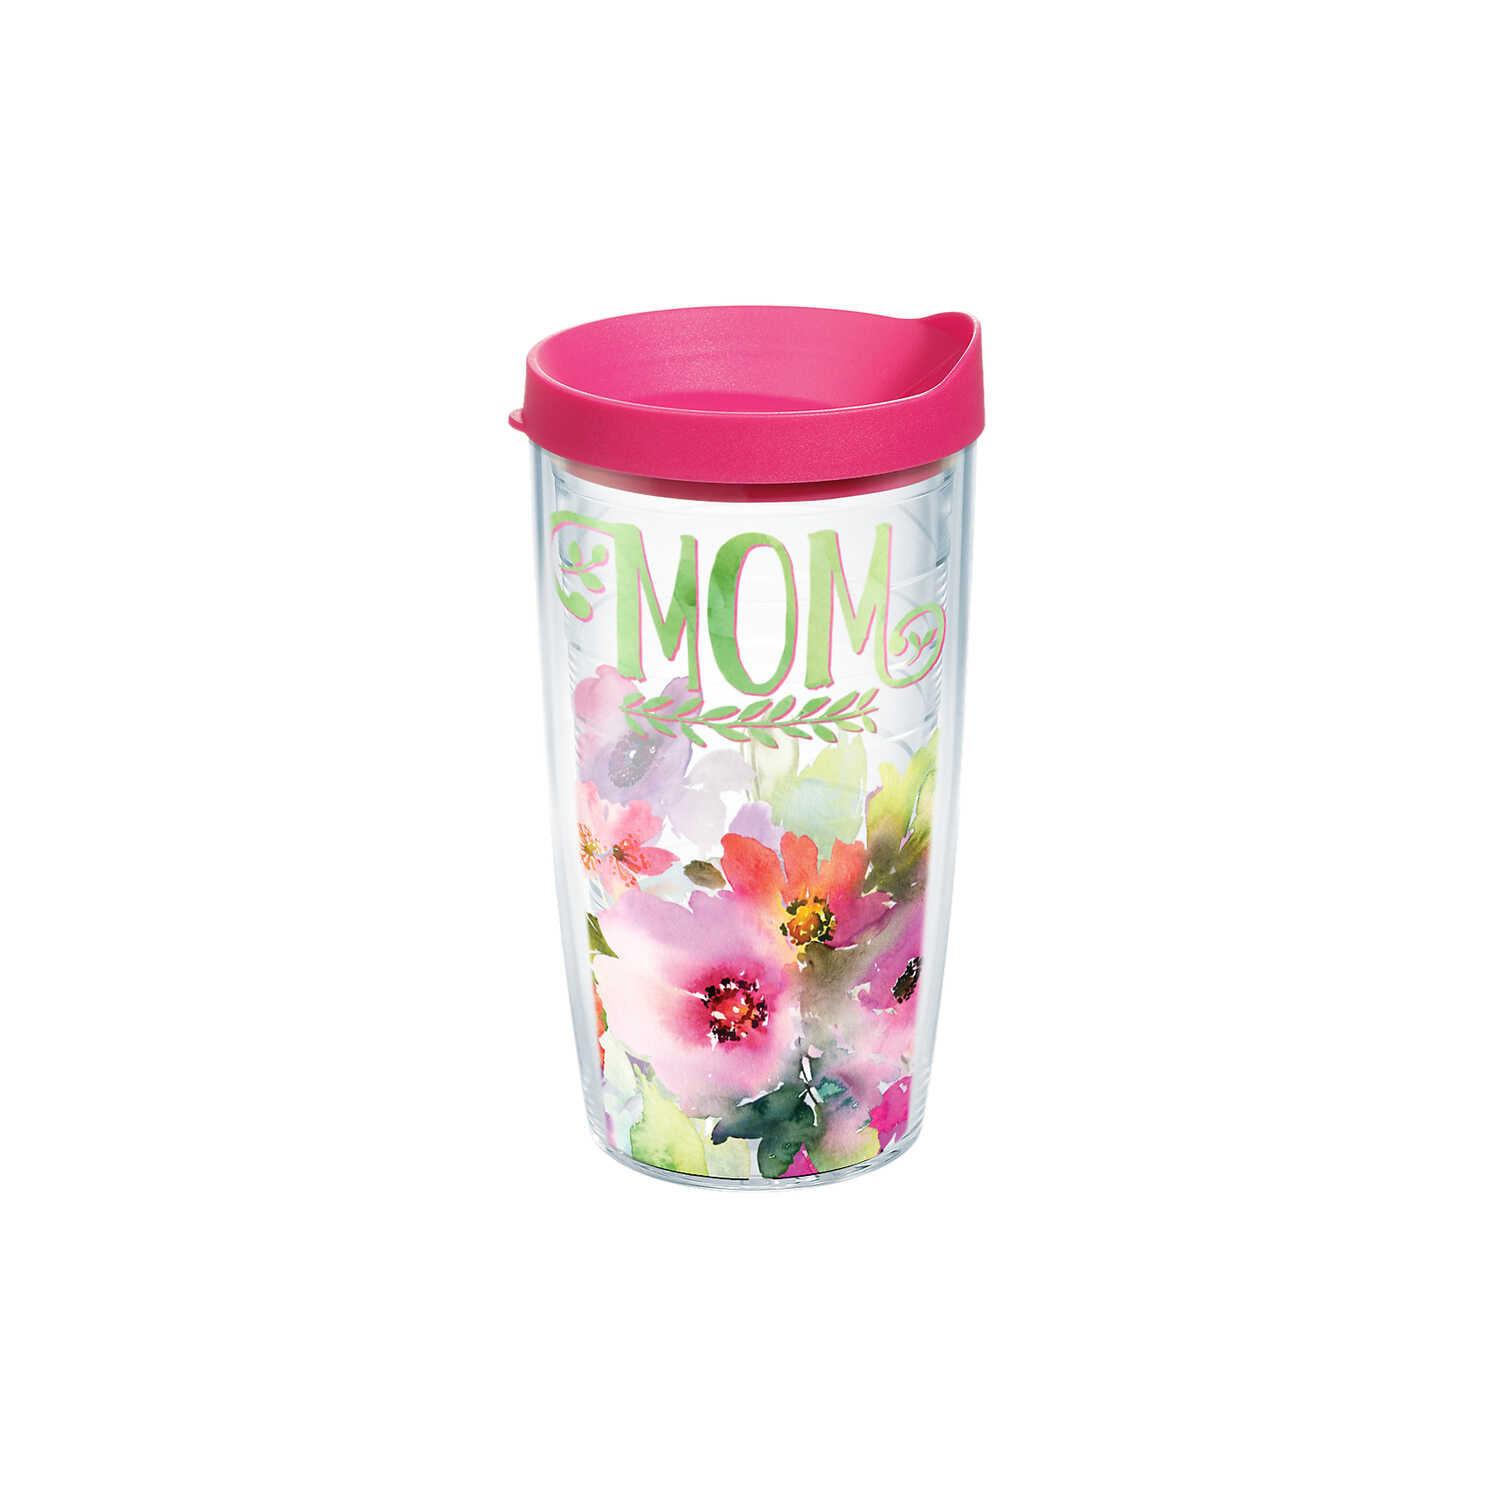 Tervis  Clear  Tritan  Mom - Watercolor Floral  Tumbler  BPA Free 16 oz.